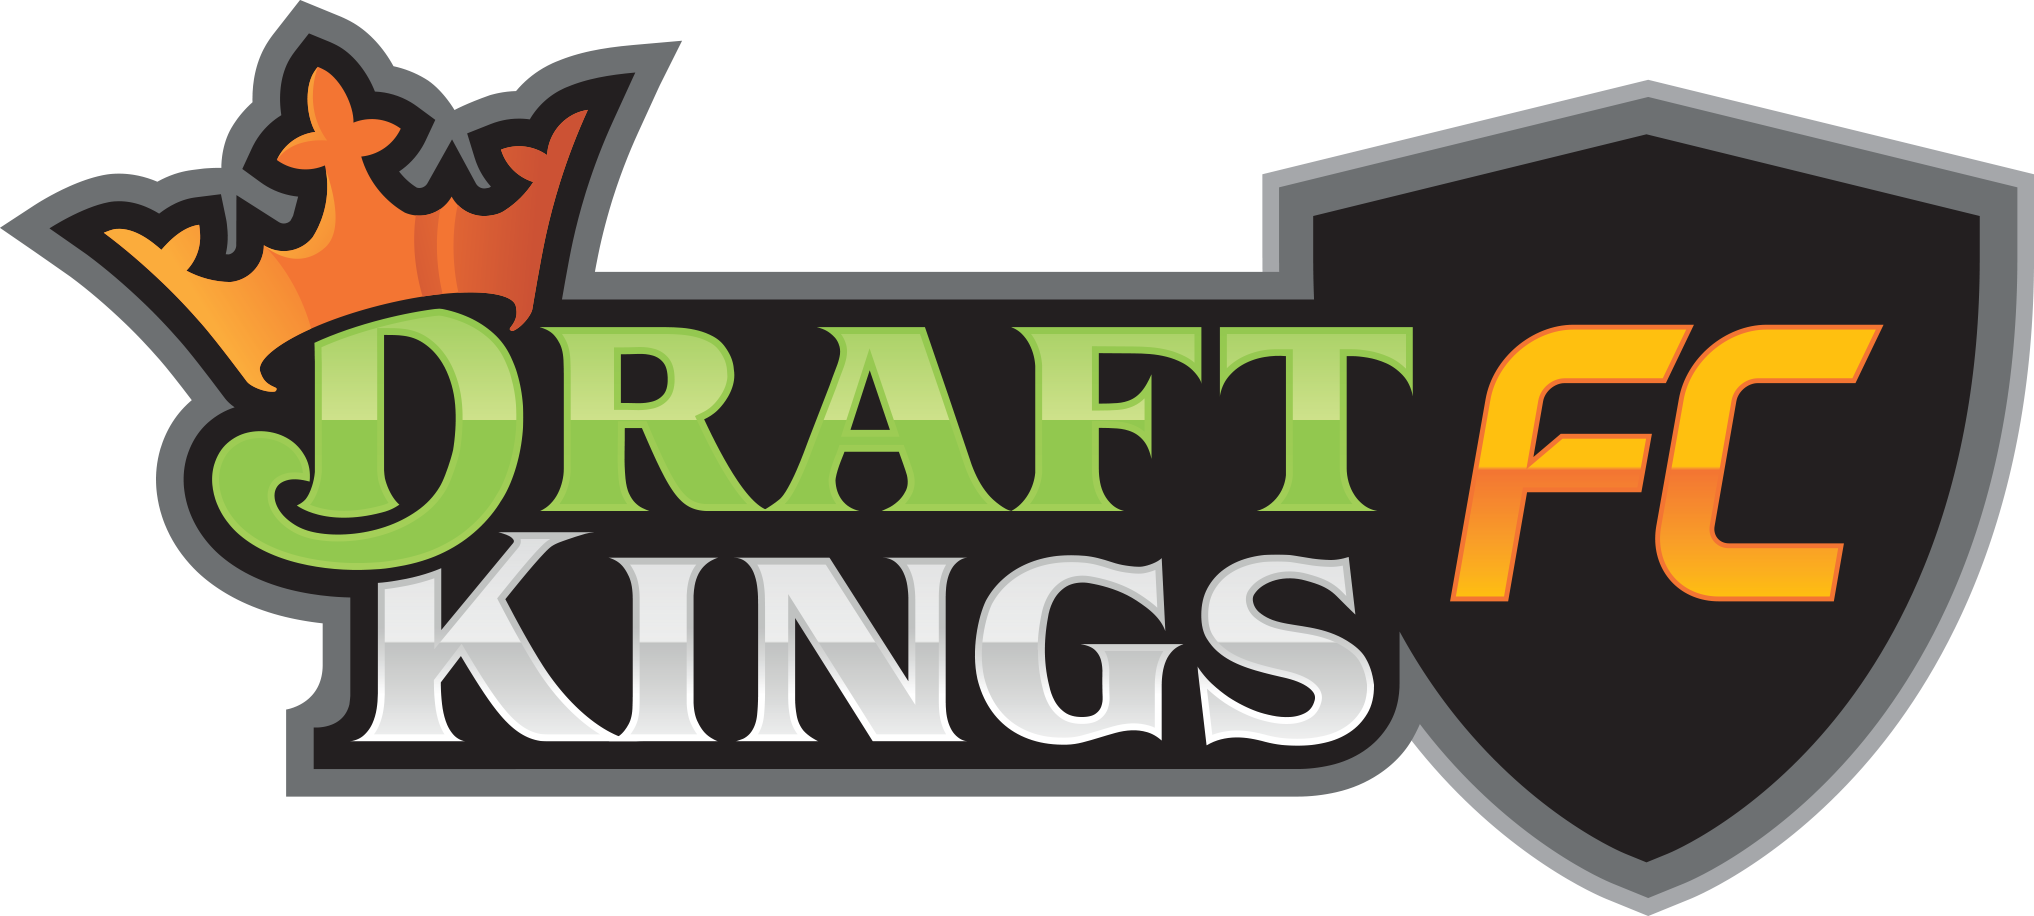 DraftKings Playbook logo